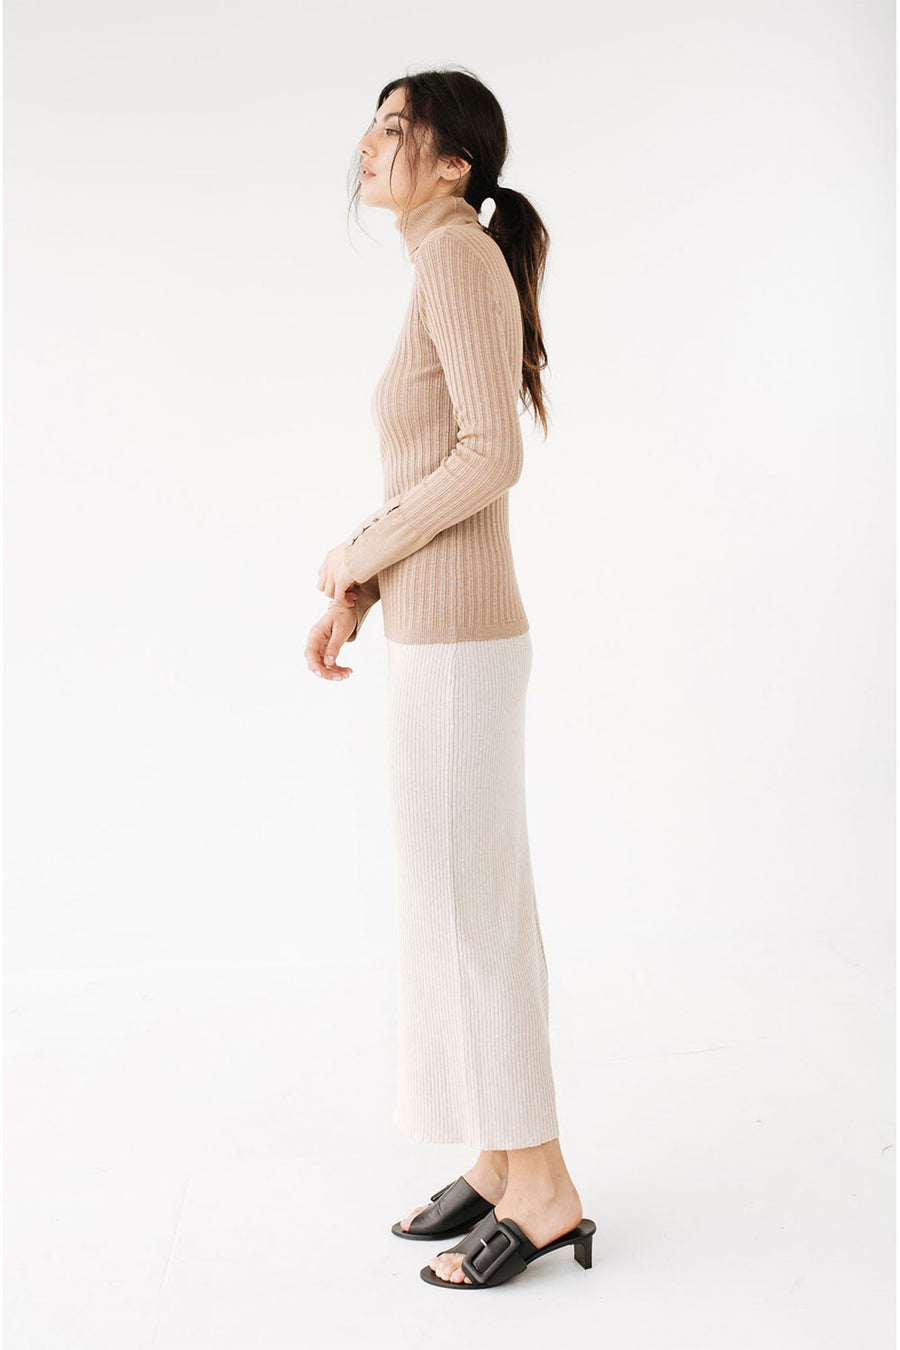 Remi Turtle Neck | Camel | Tops NZ | MARLE NZ | Black Box Boutique Auckland | Womens Fashion NZ